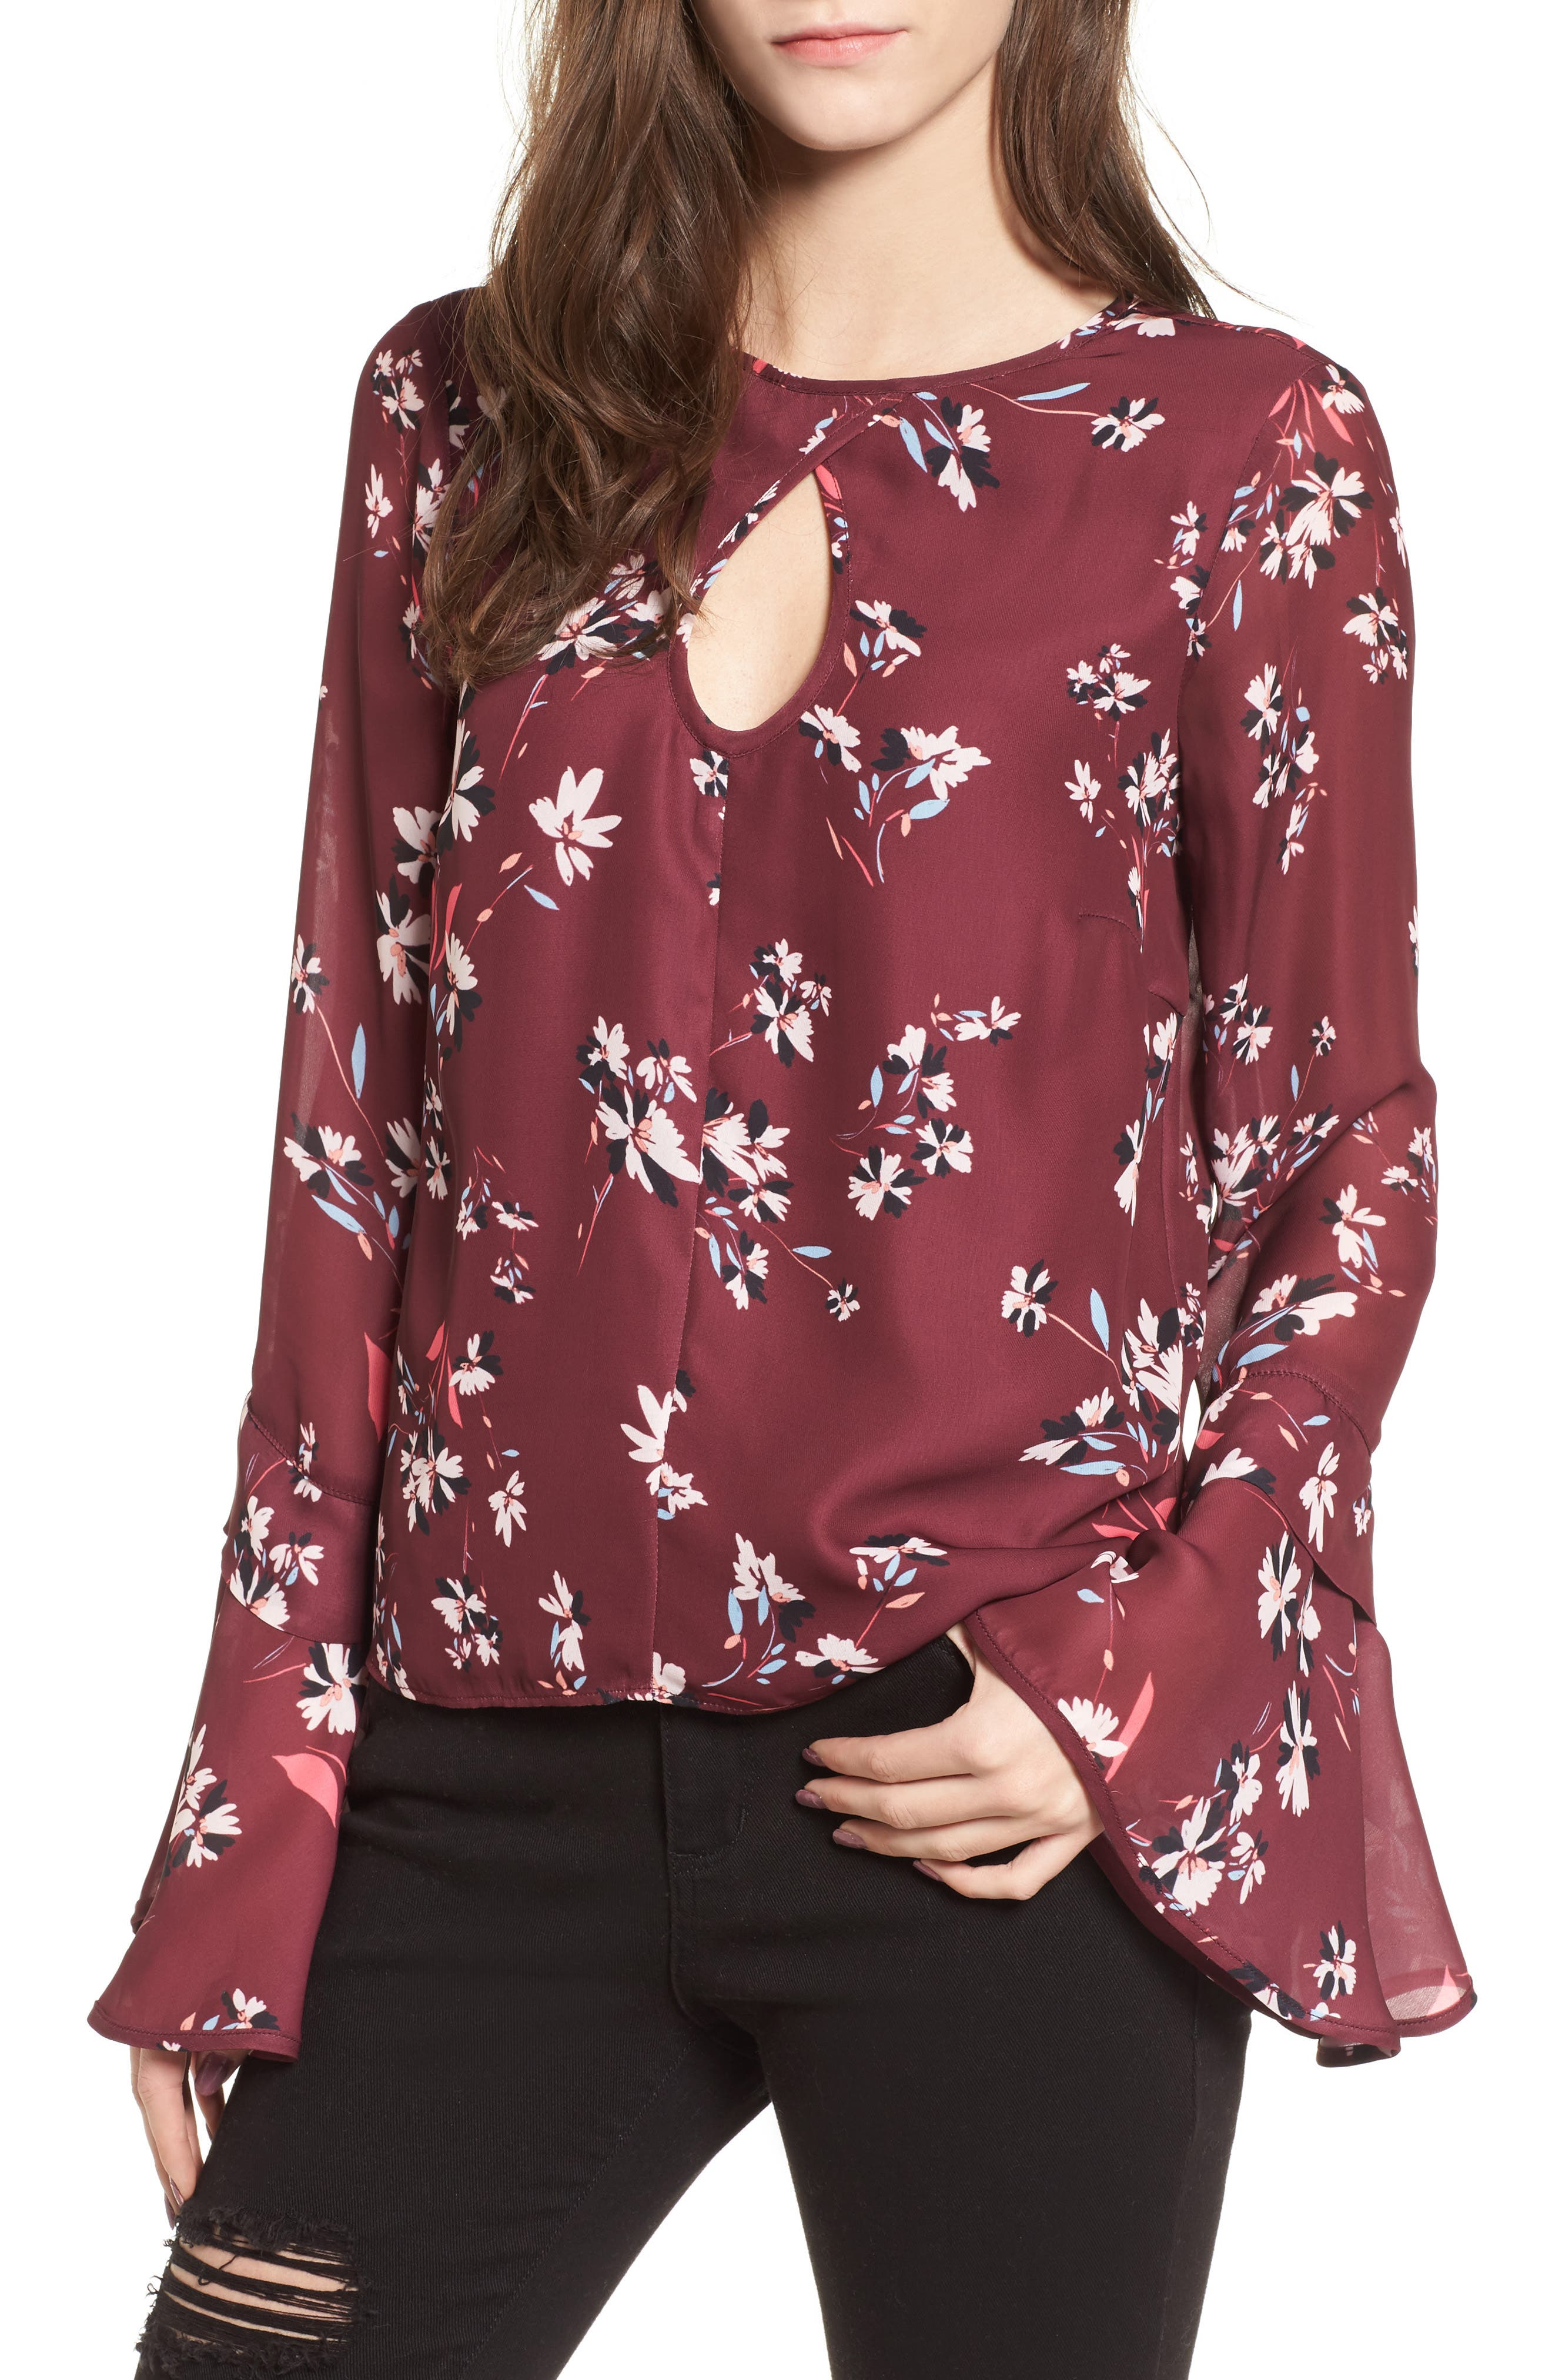 Sonoma Bell Sleeve Blouse,                         Main,                         color, Lotus